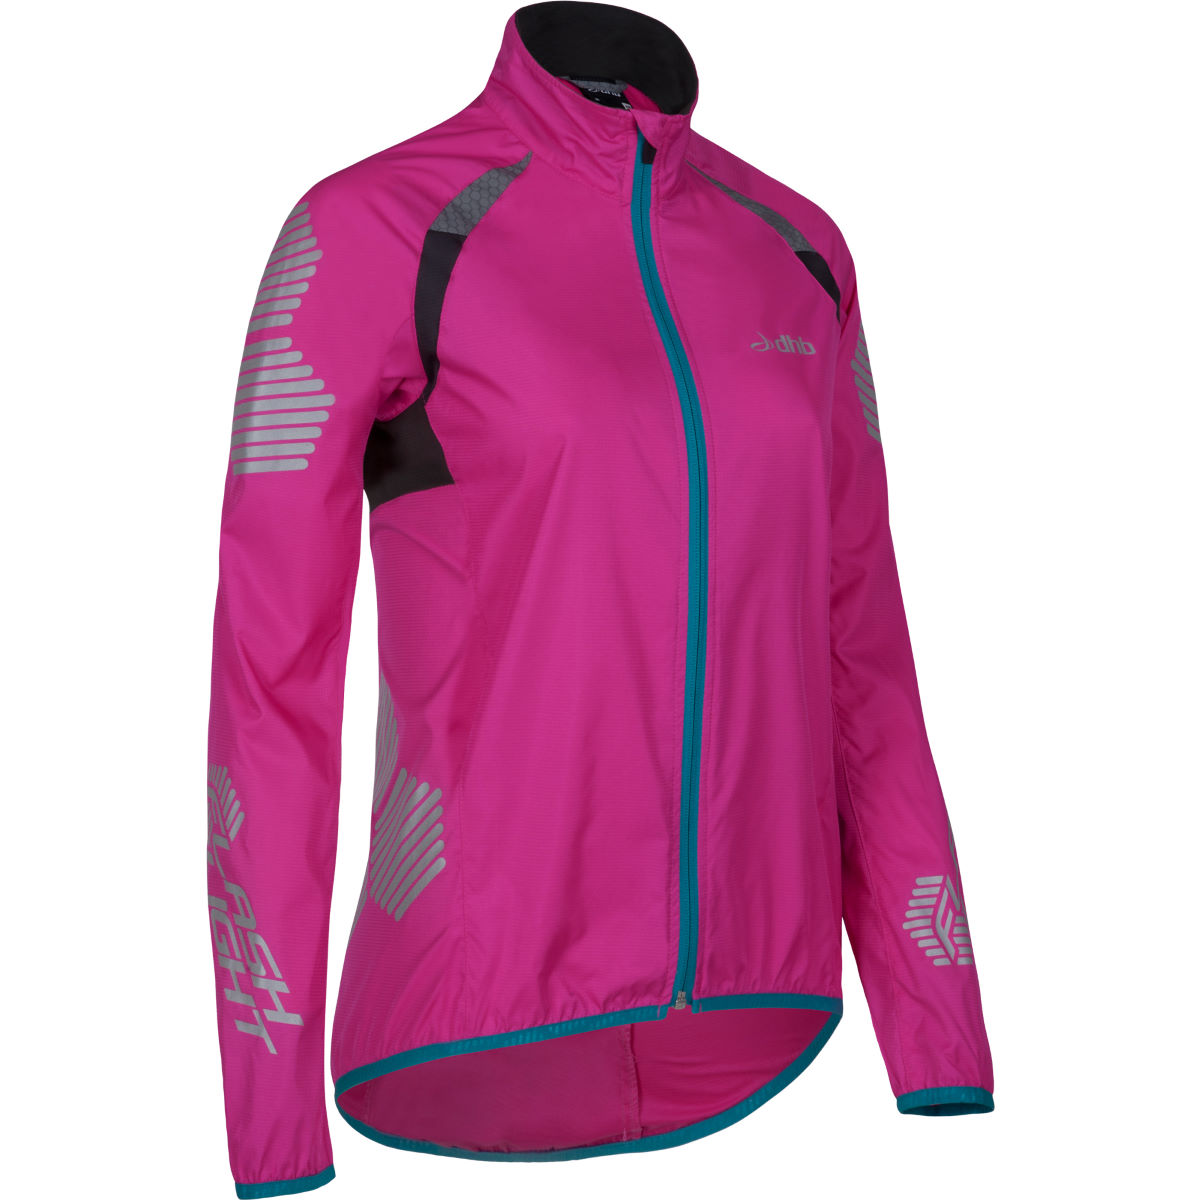 Veste cycliste coupe-vent Femme dhb Flashlight XT - 8 UK Rose Coupe-vents vélo